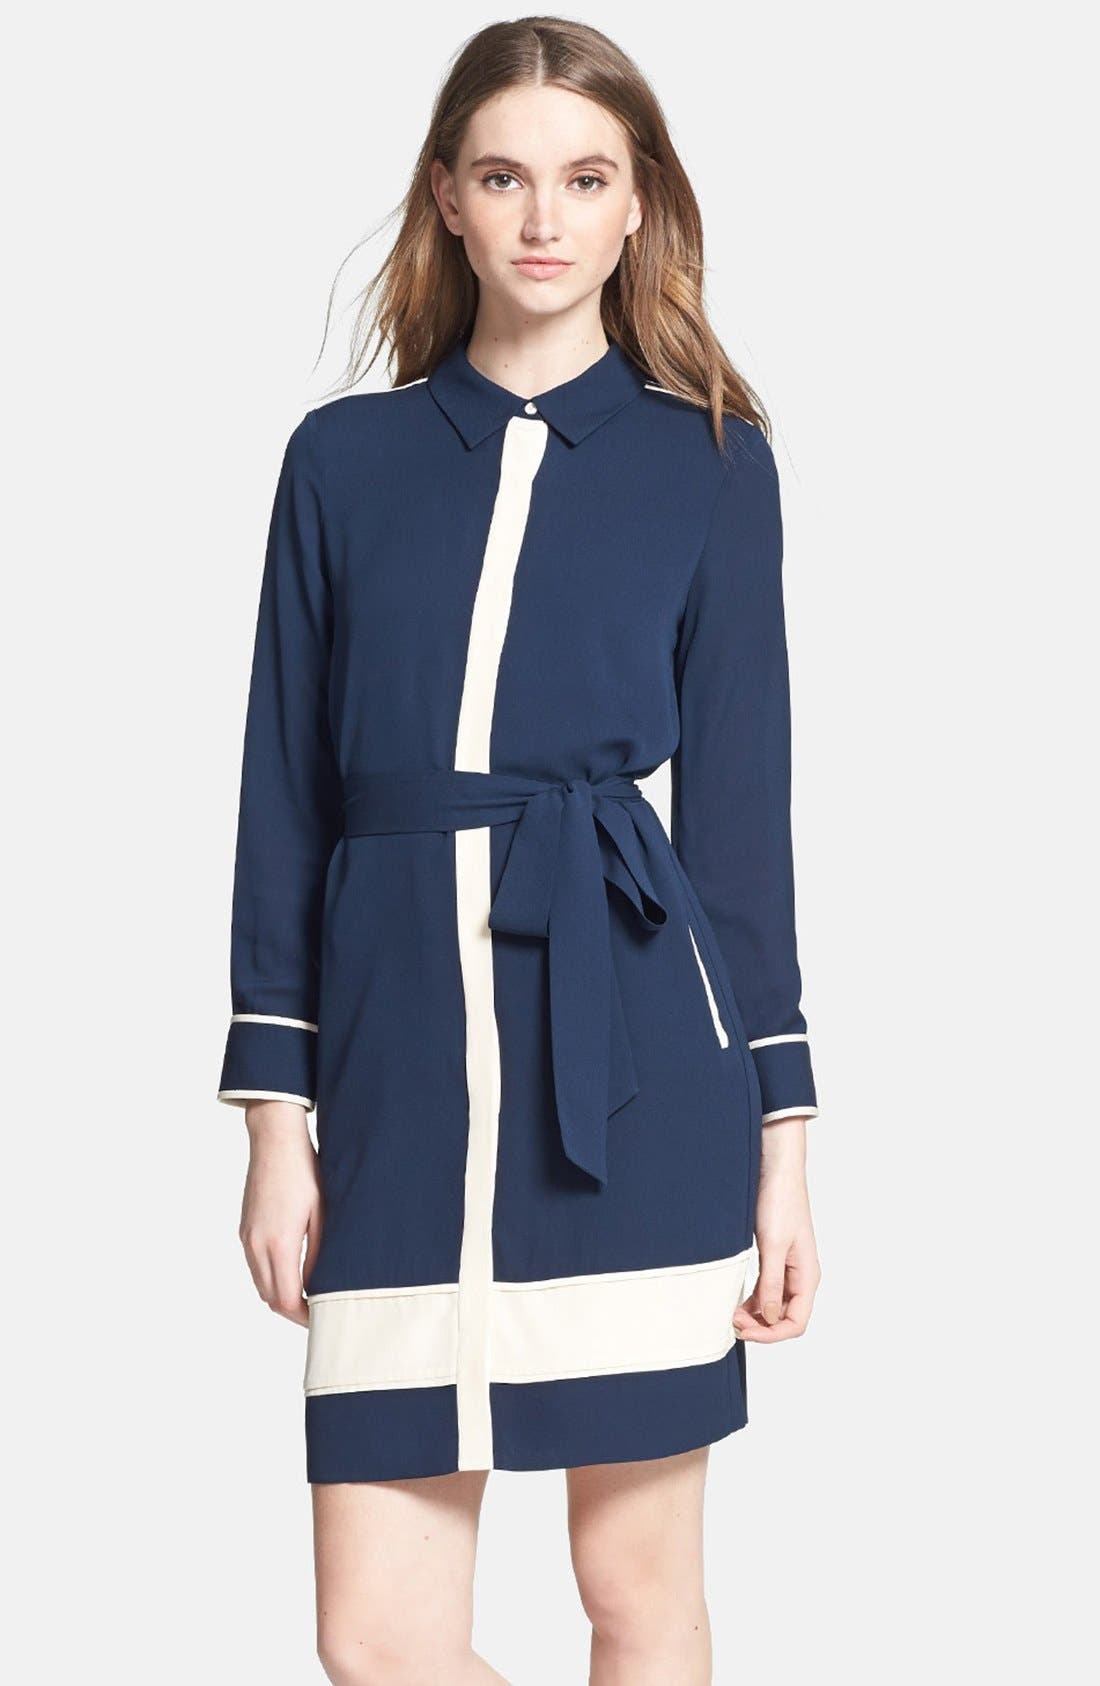 Alternate Image 1 Selected - Diane von Furstenberg 'Cadence' Silk Shirtdress